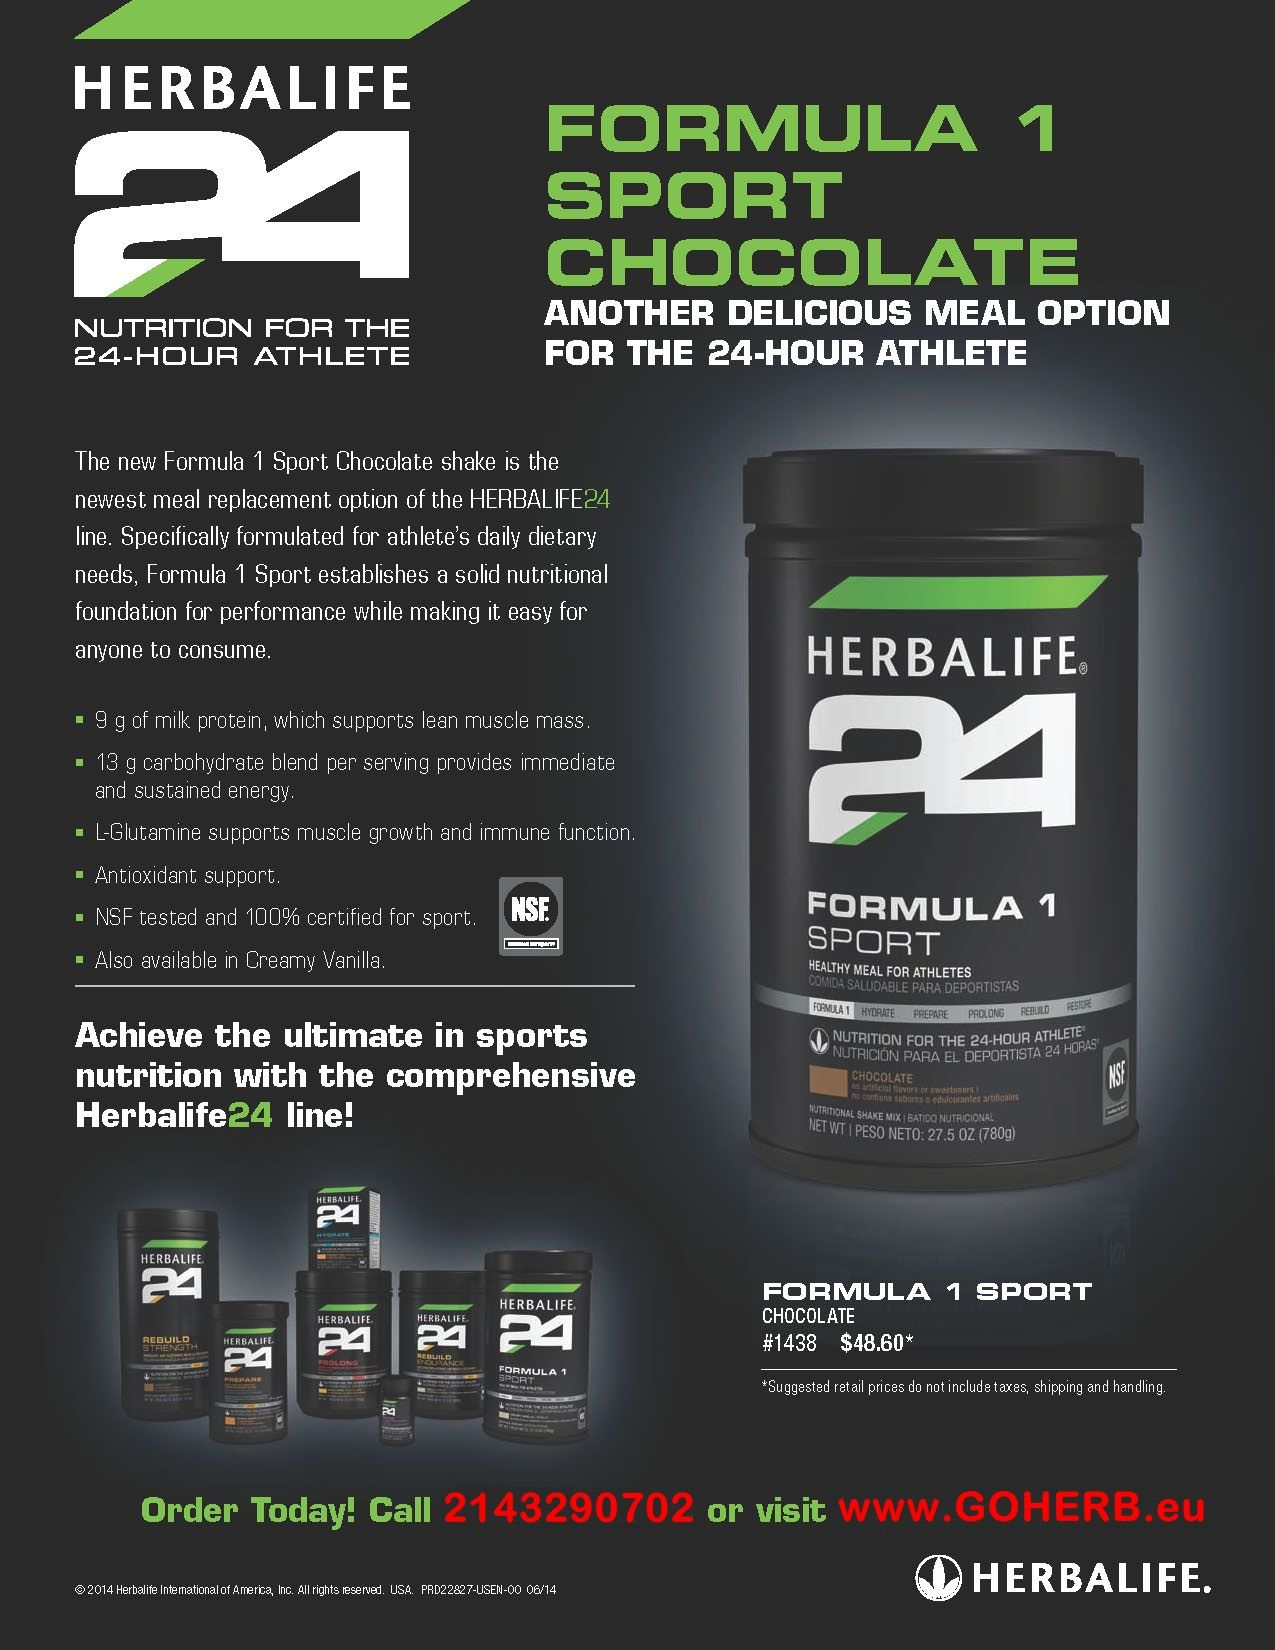 Try the NEWEST meal replacement option of the Herbalife24 line!  Purchase YOURS TODAY! All Herbalife products and nutritional/ beauty/ success advice